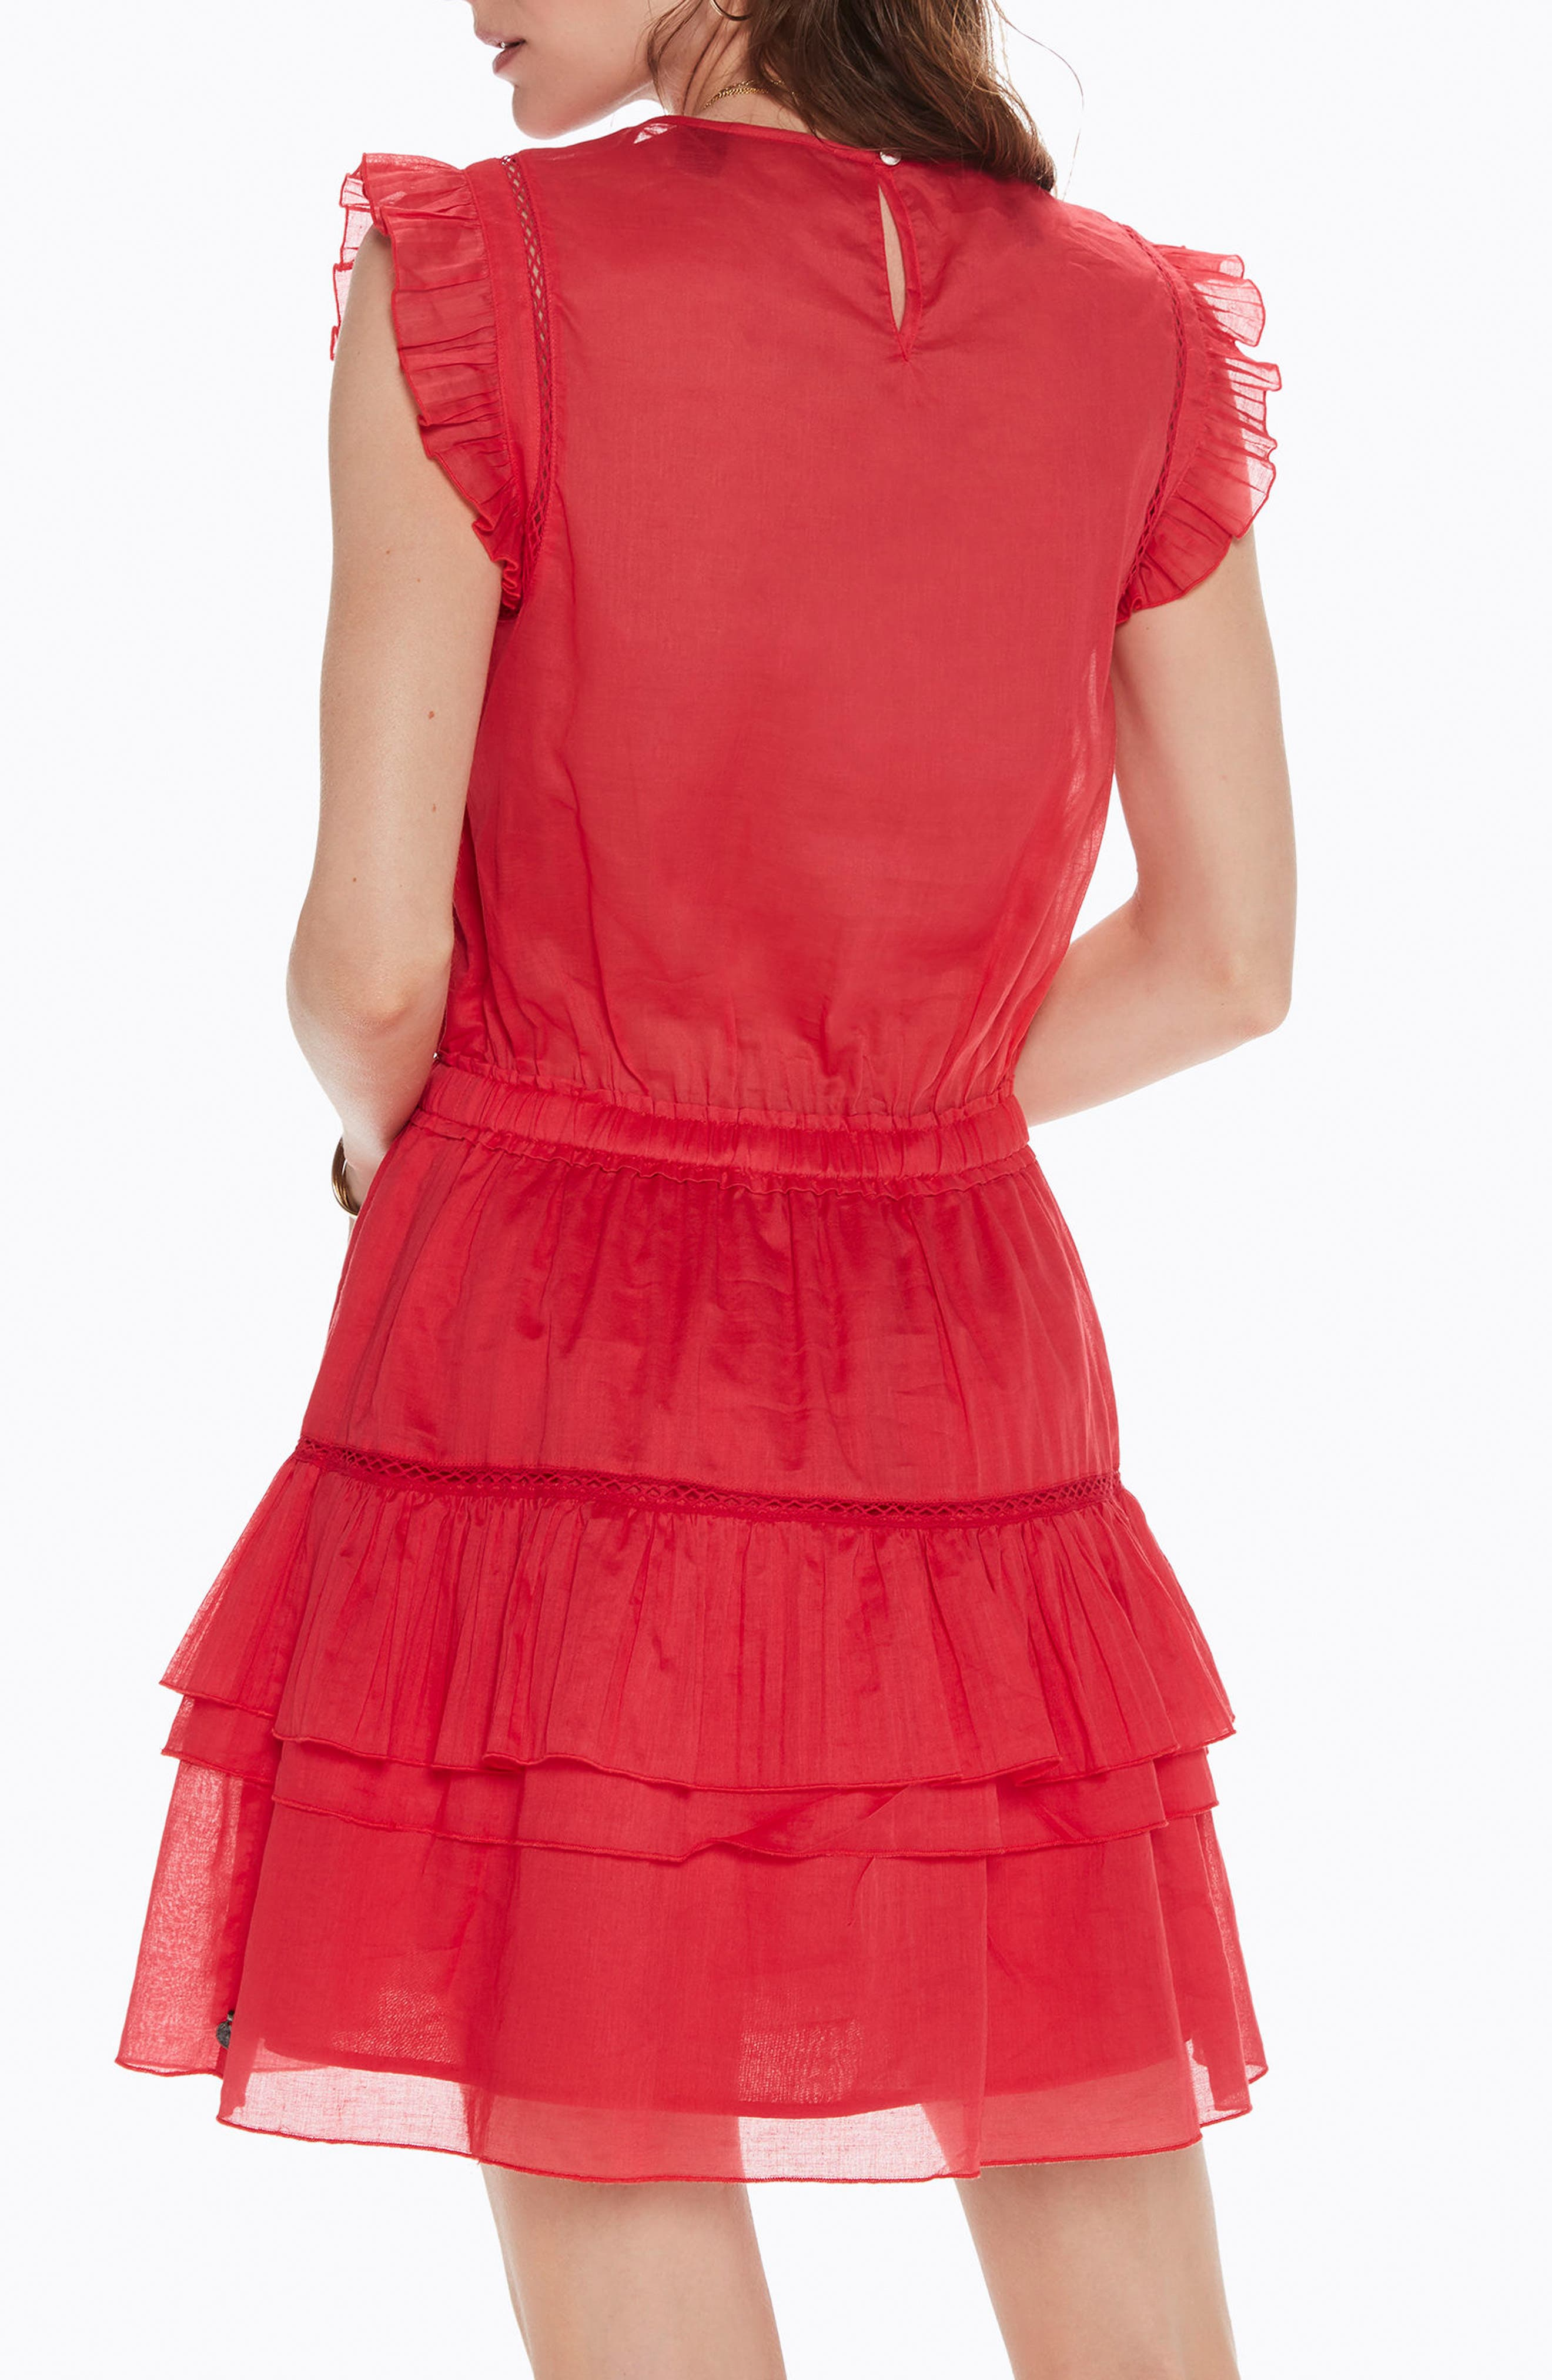 SCOTCH & SODA,                             Tiered Sleeveless Dress,                             Alternate thumbnail 2, color,                             600